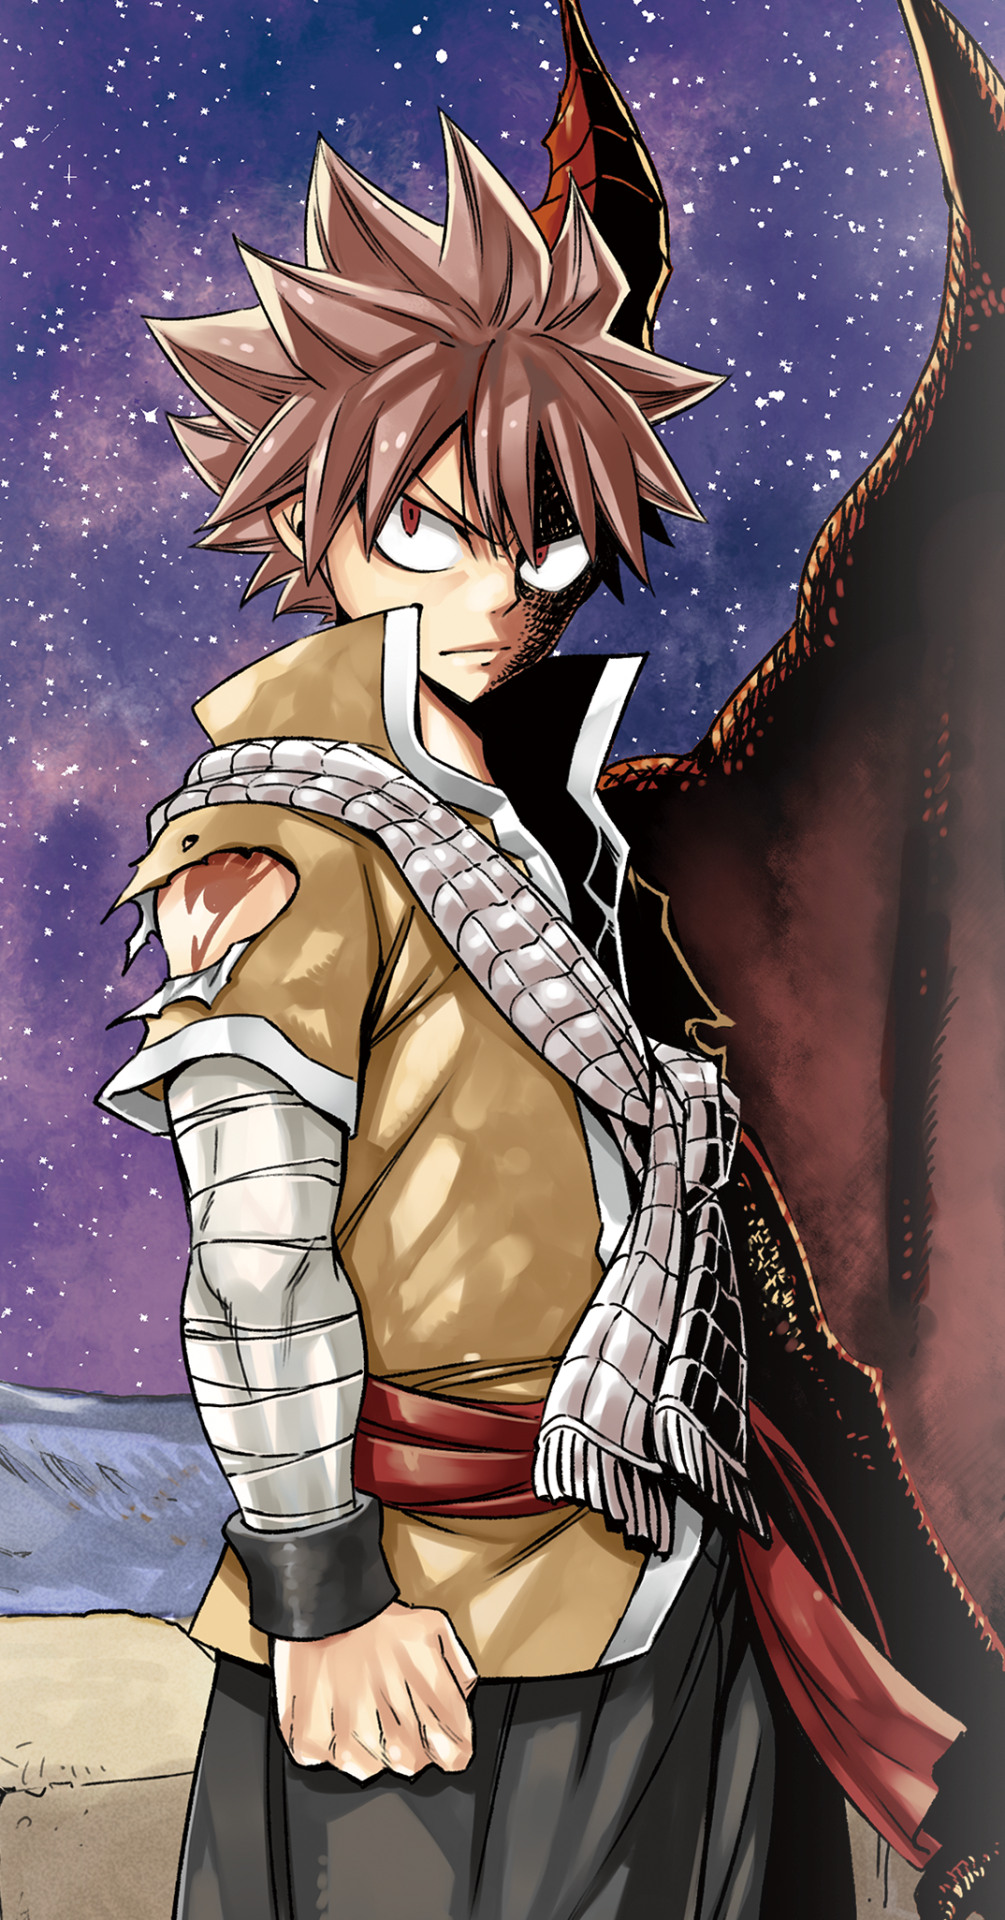 Natsu dragneel in dragon cry the second fairy tail movie - Image de fairy tail natsu ...